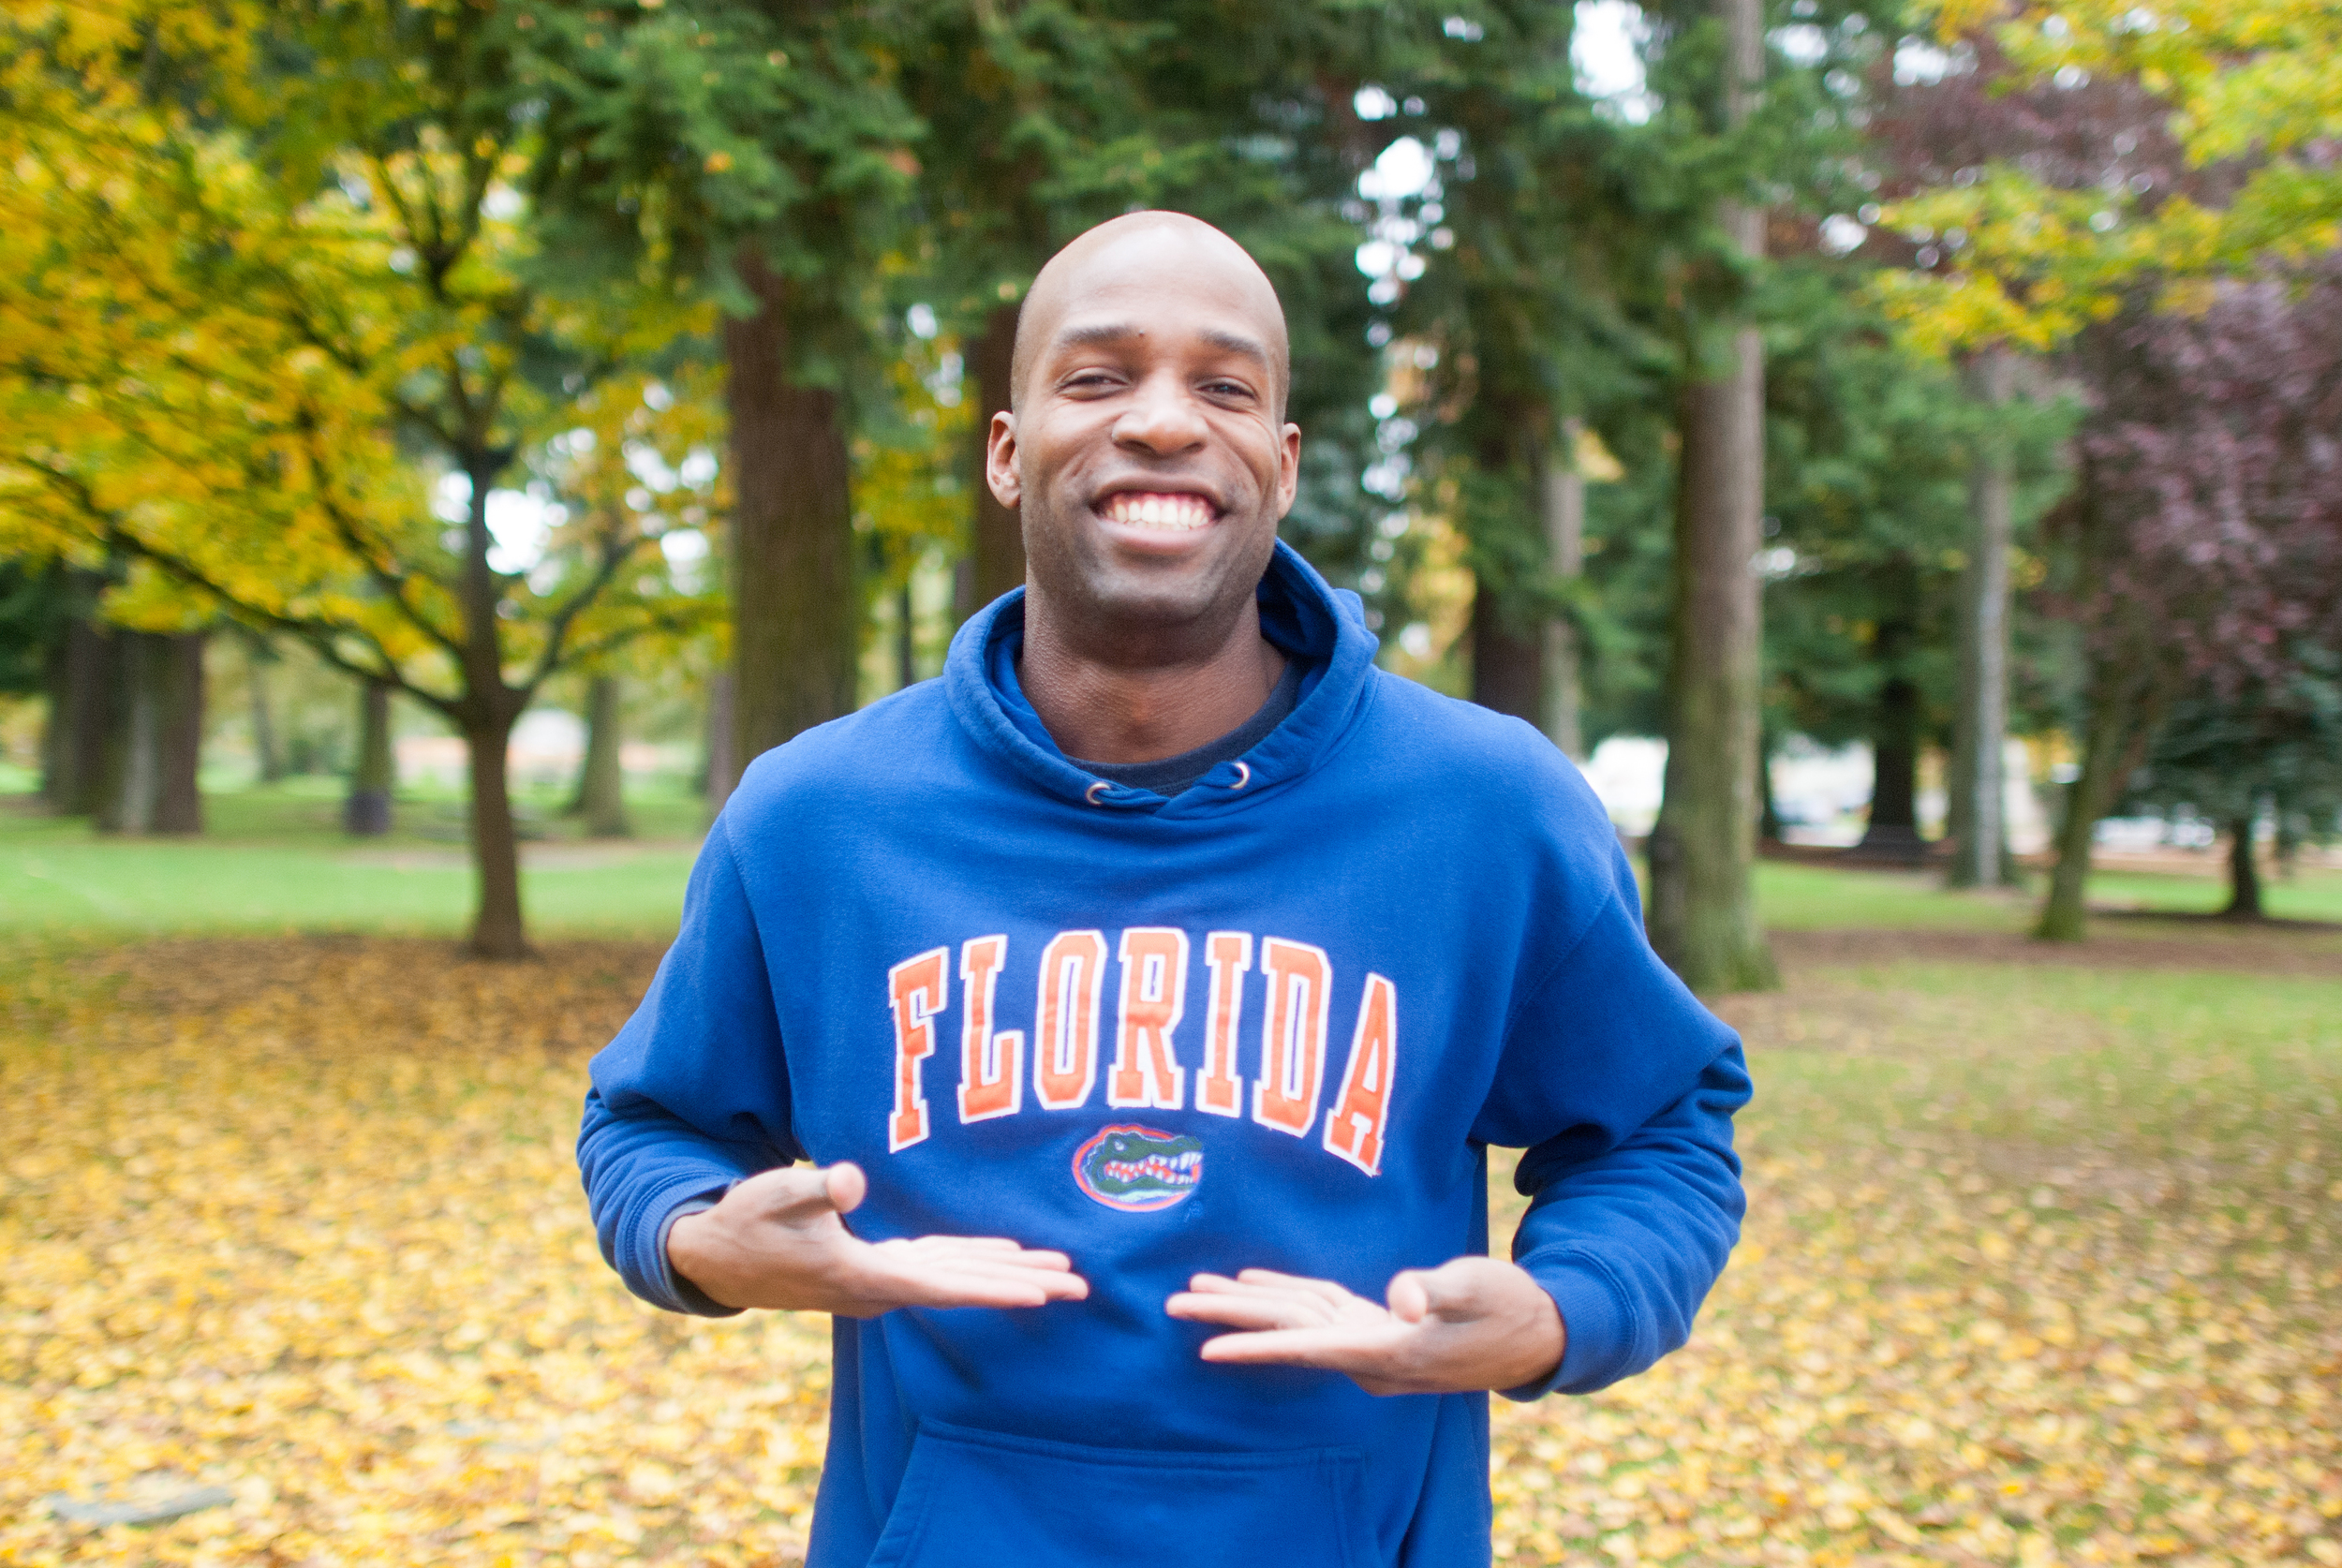 Matthew shows off his team pride in Gators gear.